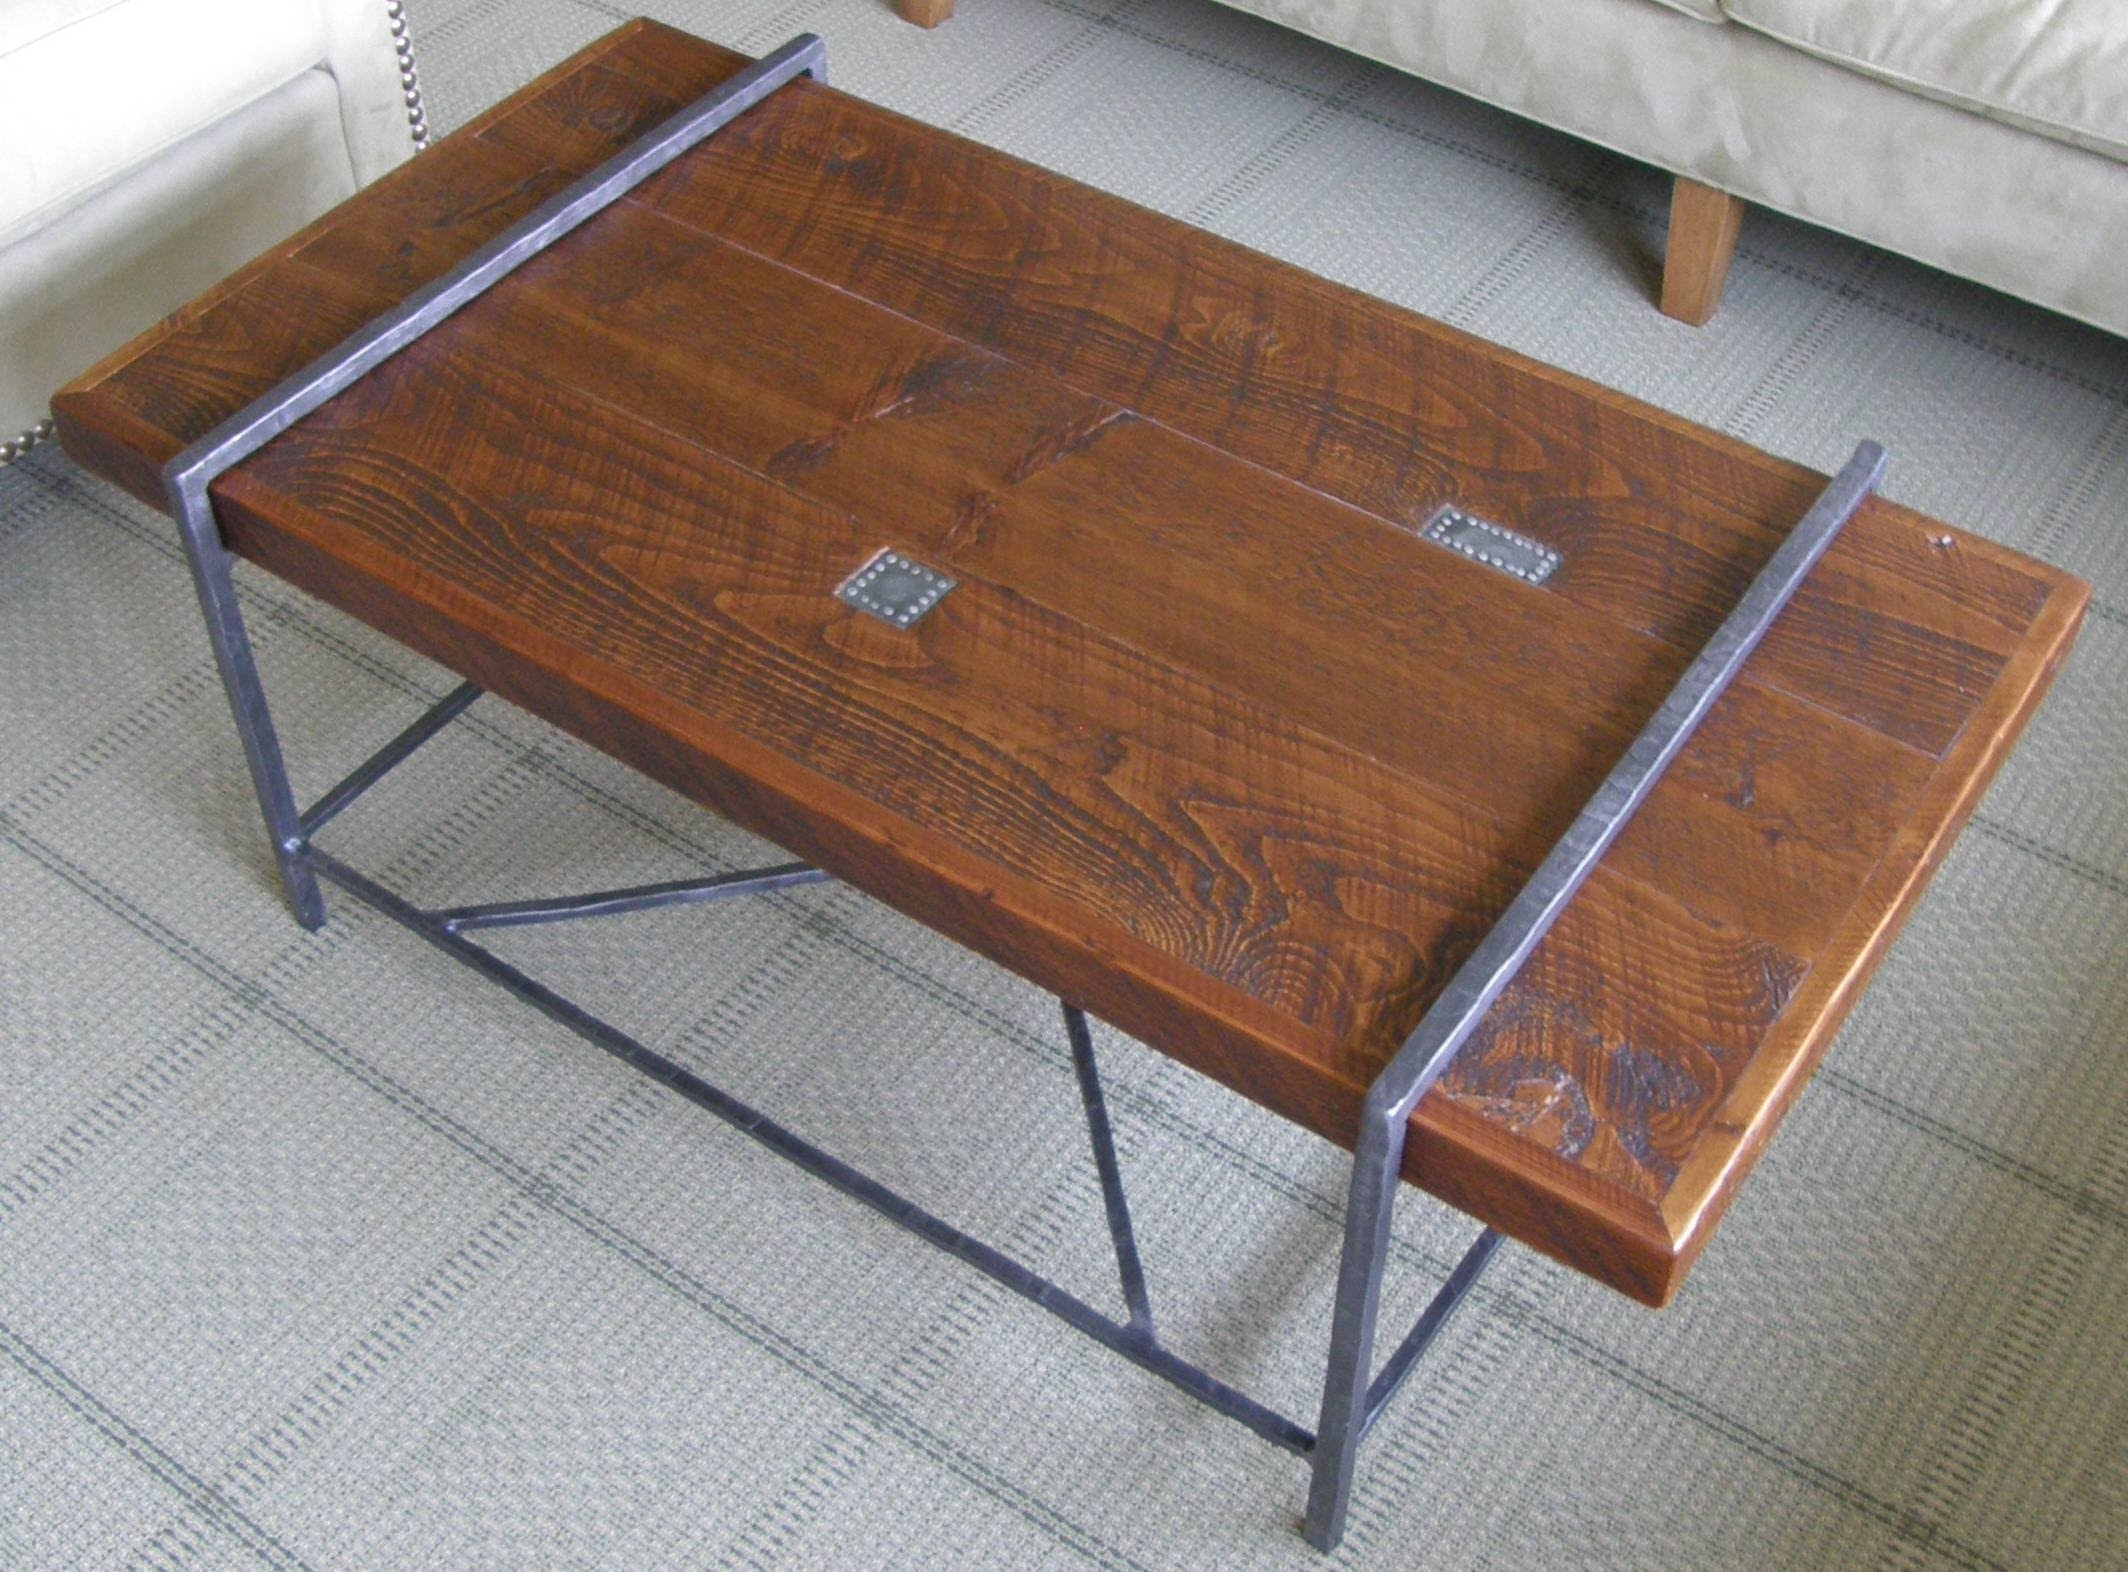 Reclaimed Wood Coffee Table Top With Metal Base – Youtube In Popular Pine Metal Tube Coffee Tables (View 15 of 20)